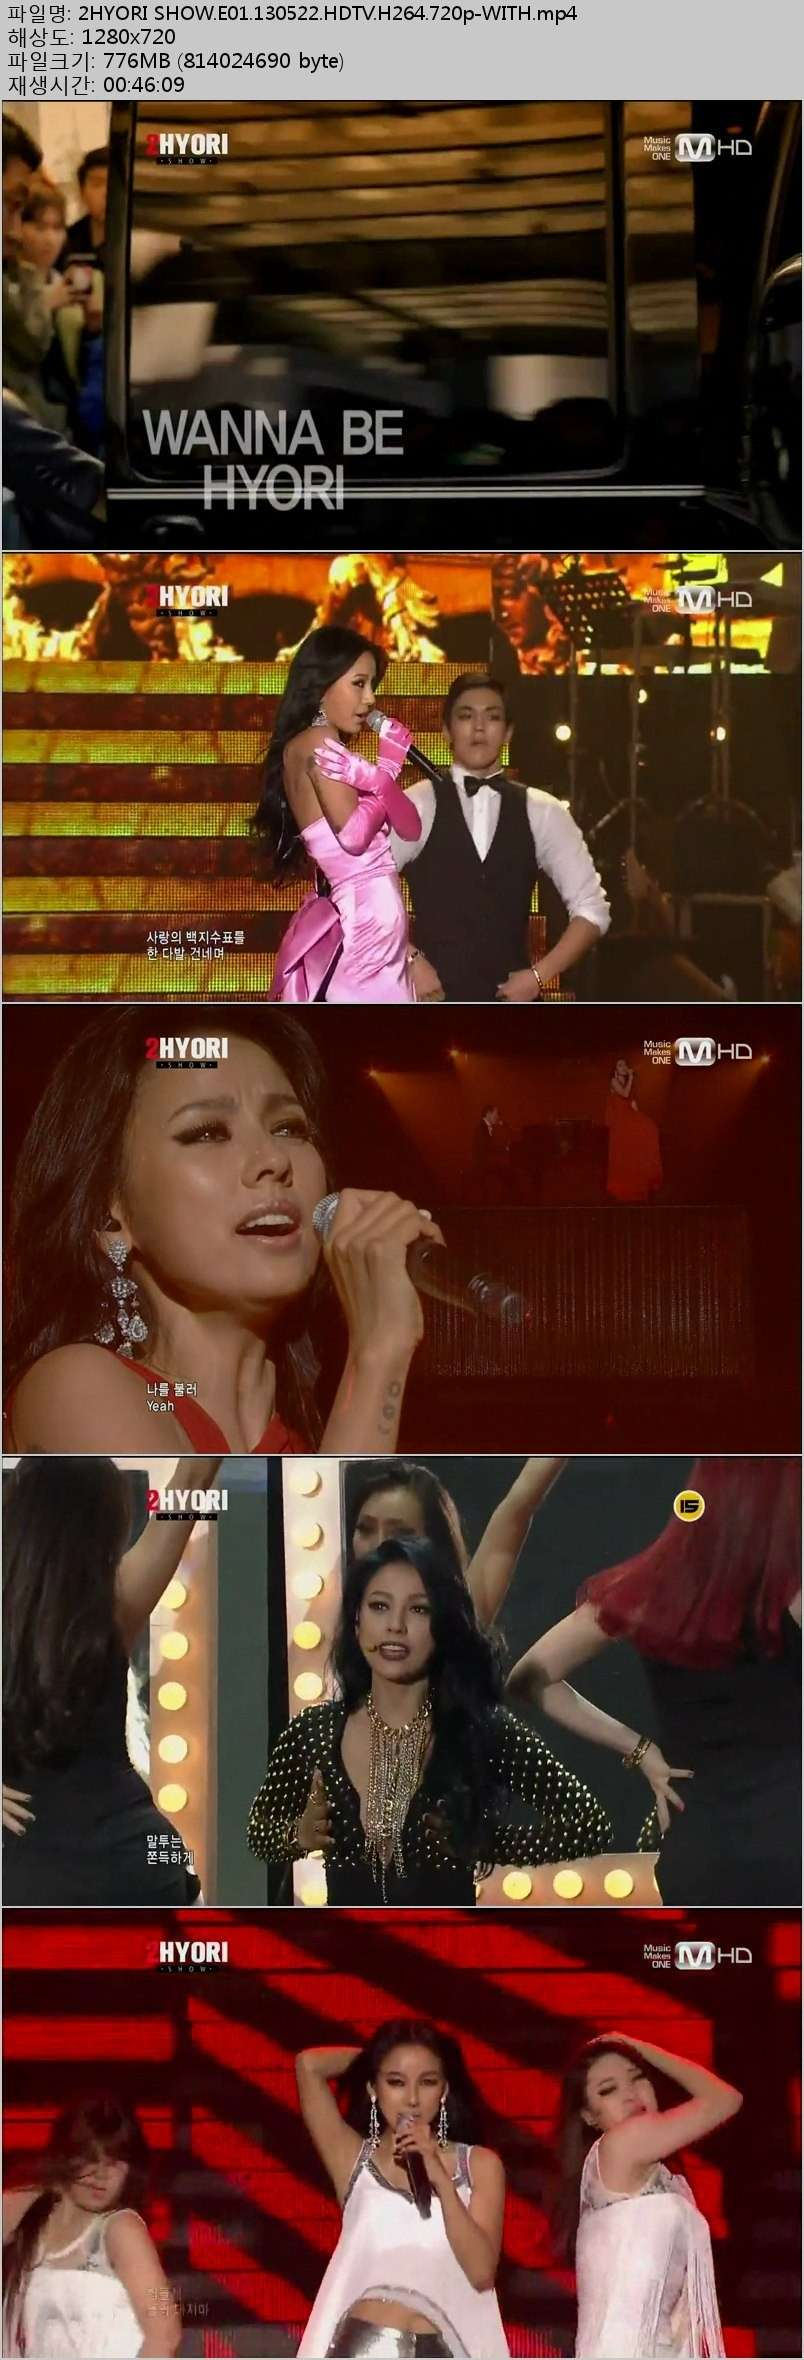 [DL][22.05.13] 2HYORI SHOW {Updated Full Show Google #2 & Link Online #83} - Page 2 9c1b1a10